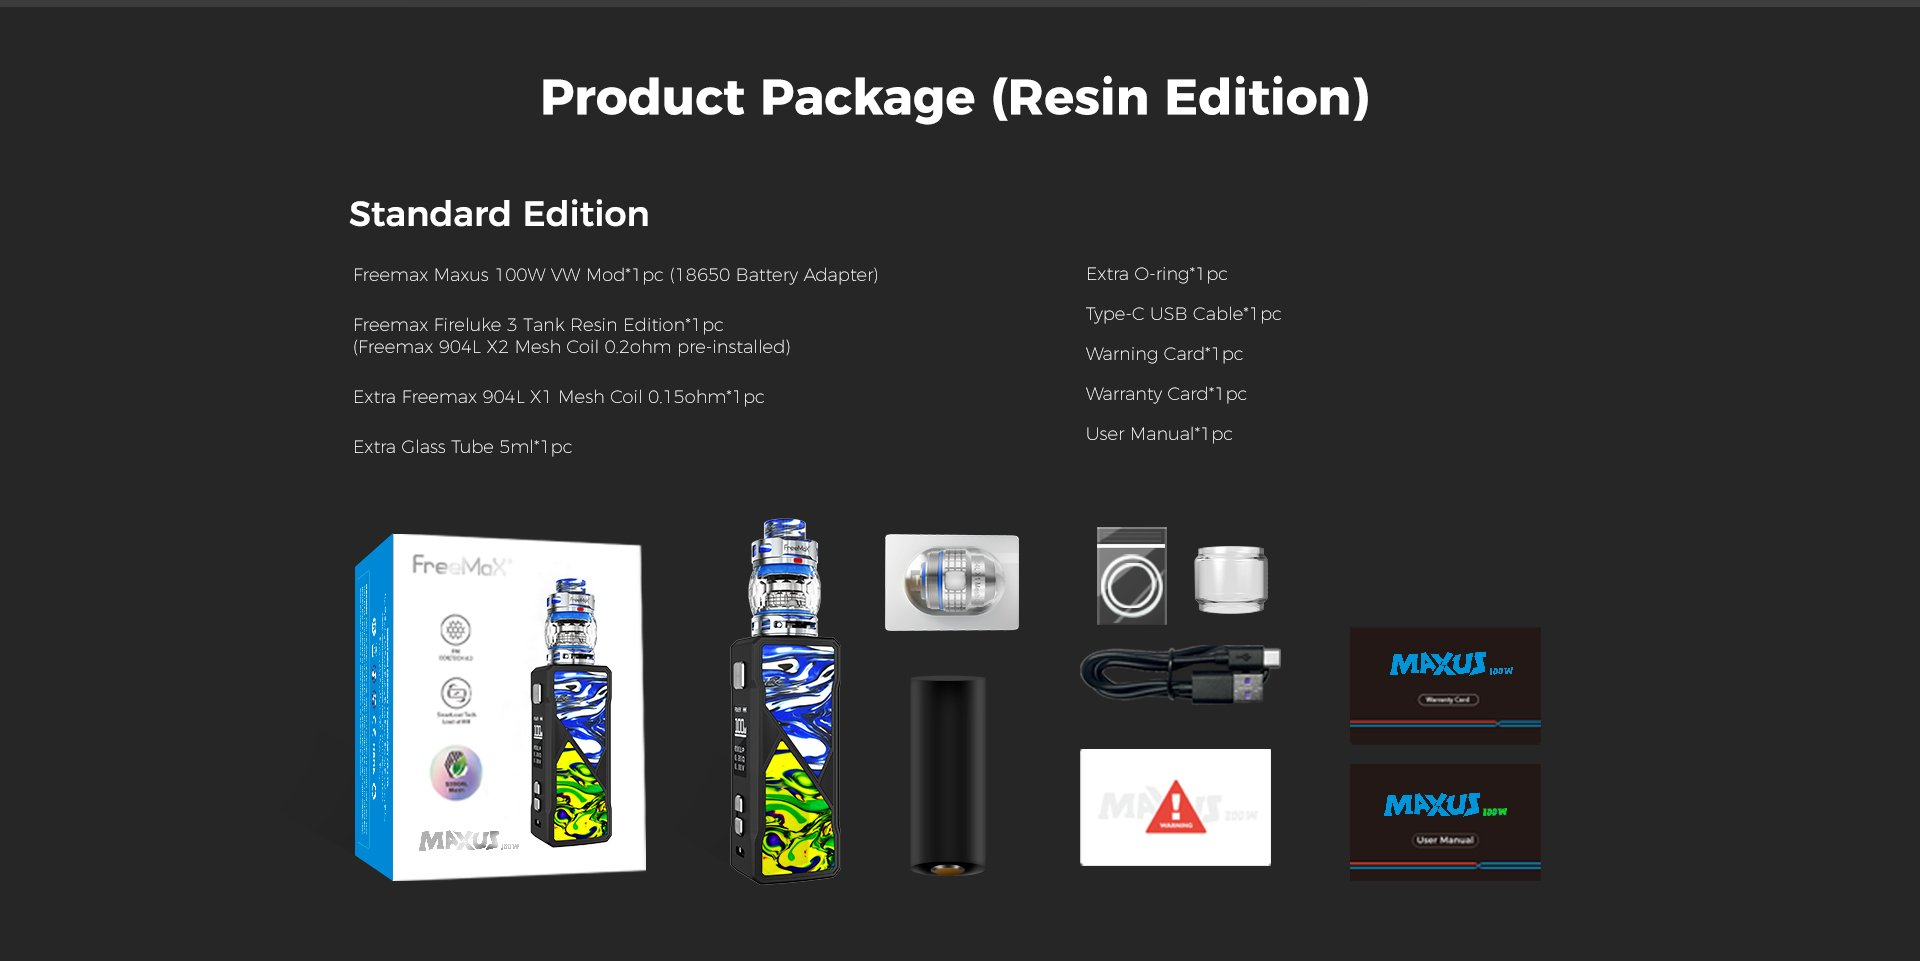 product-package-resin-edition-standare-edition